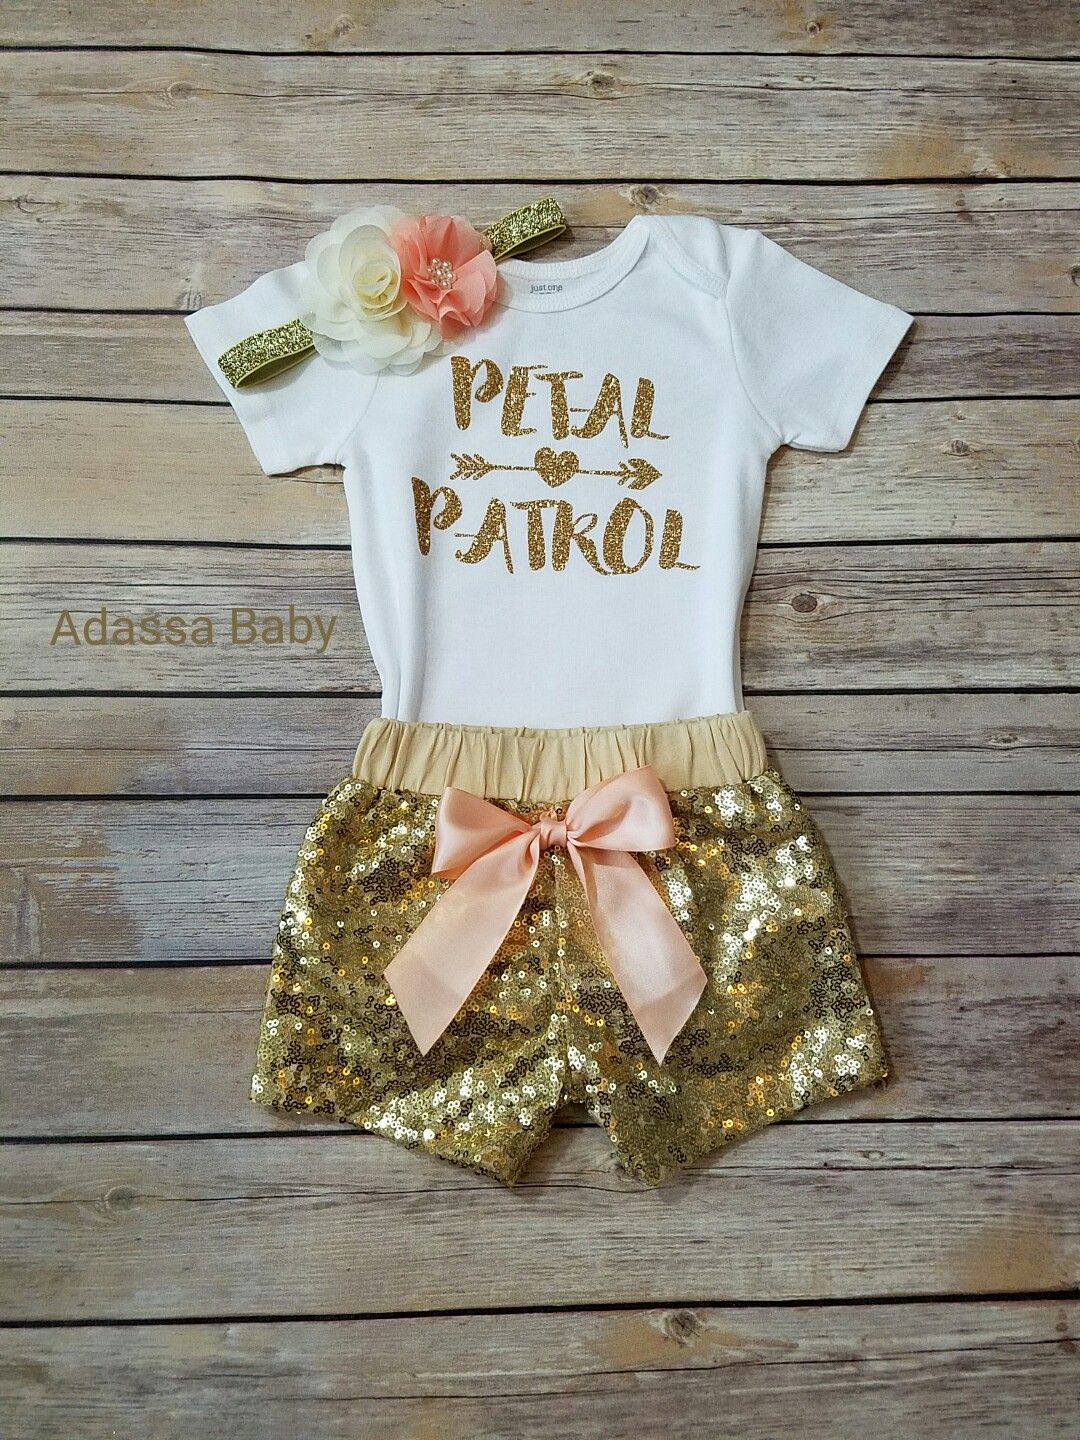 db744a99814 Petal Patrol Outfit Flower Girl Rehearsal Outfit Peach And Gold Gold Sequin  Shorts